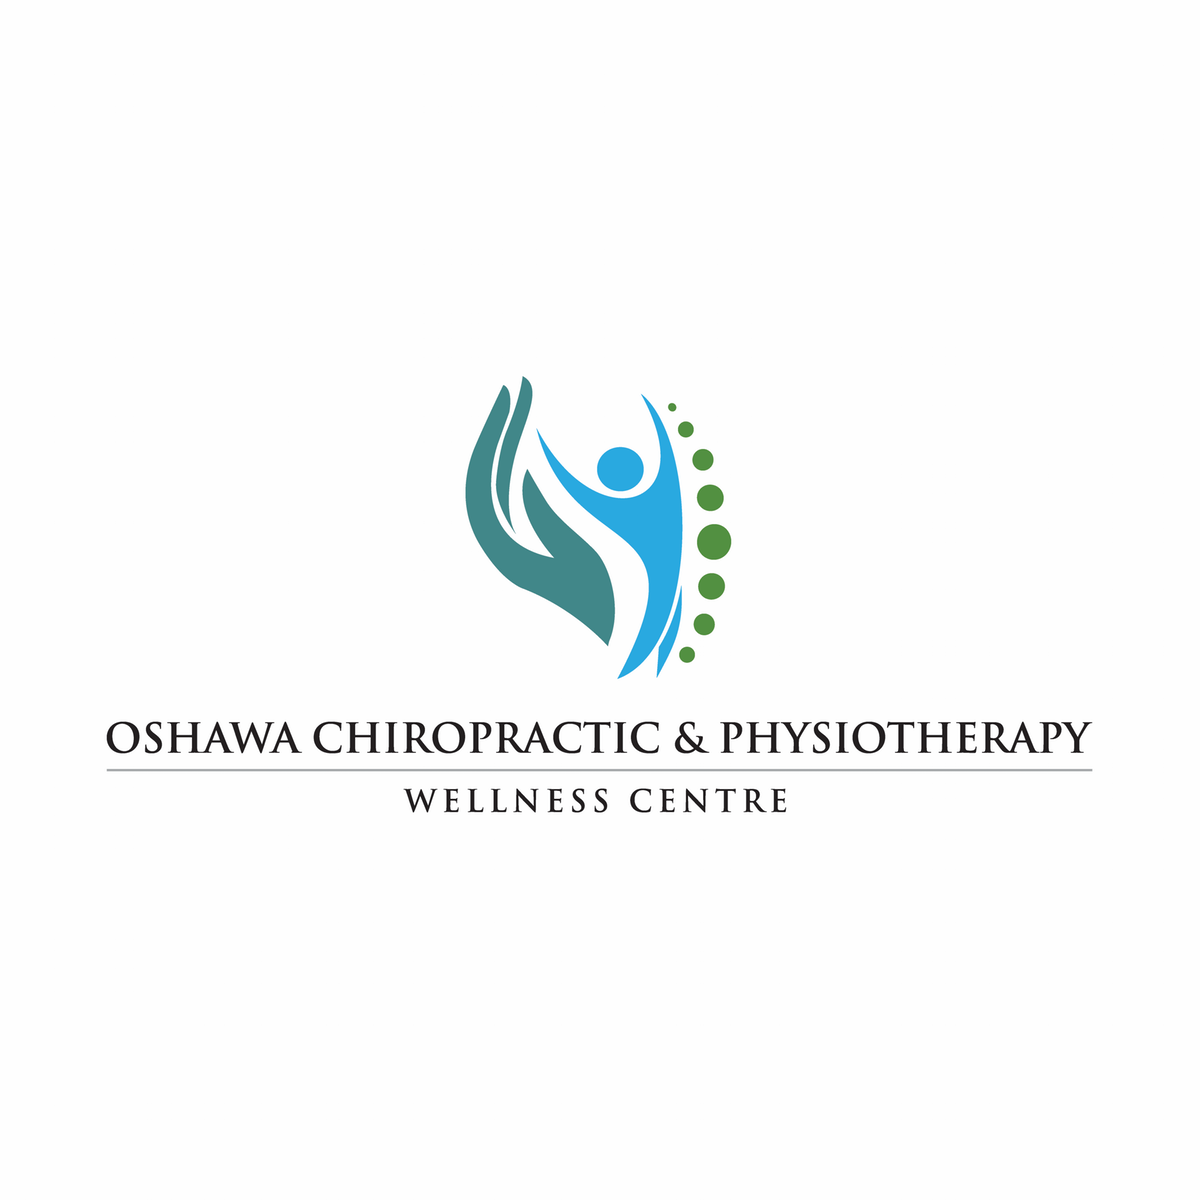 Have a logo and need to change clinic name